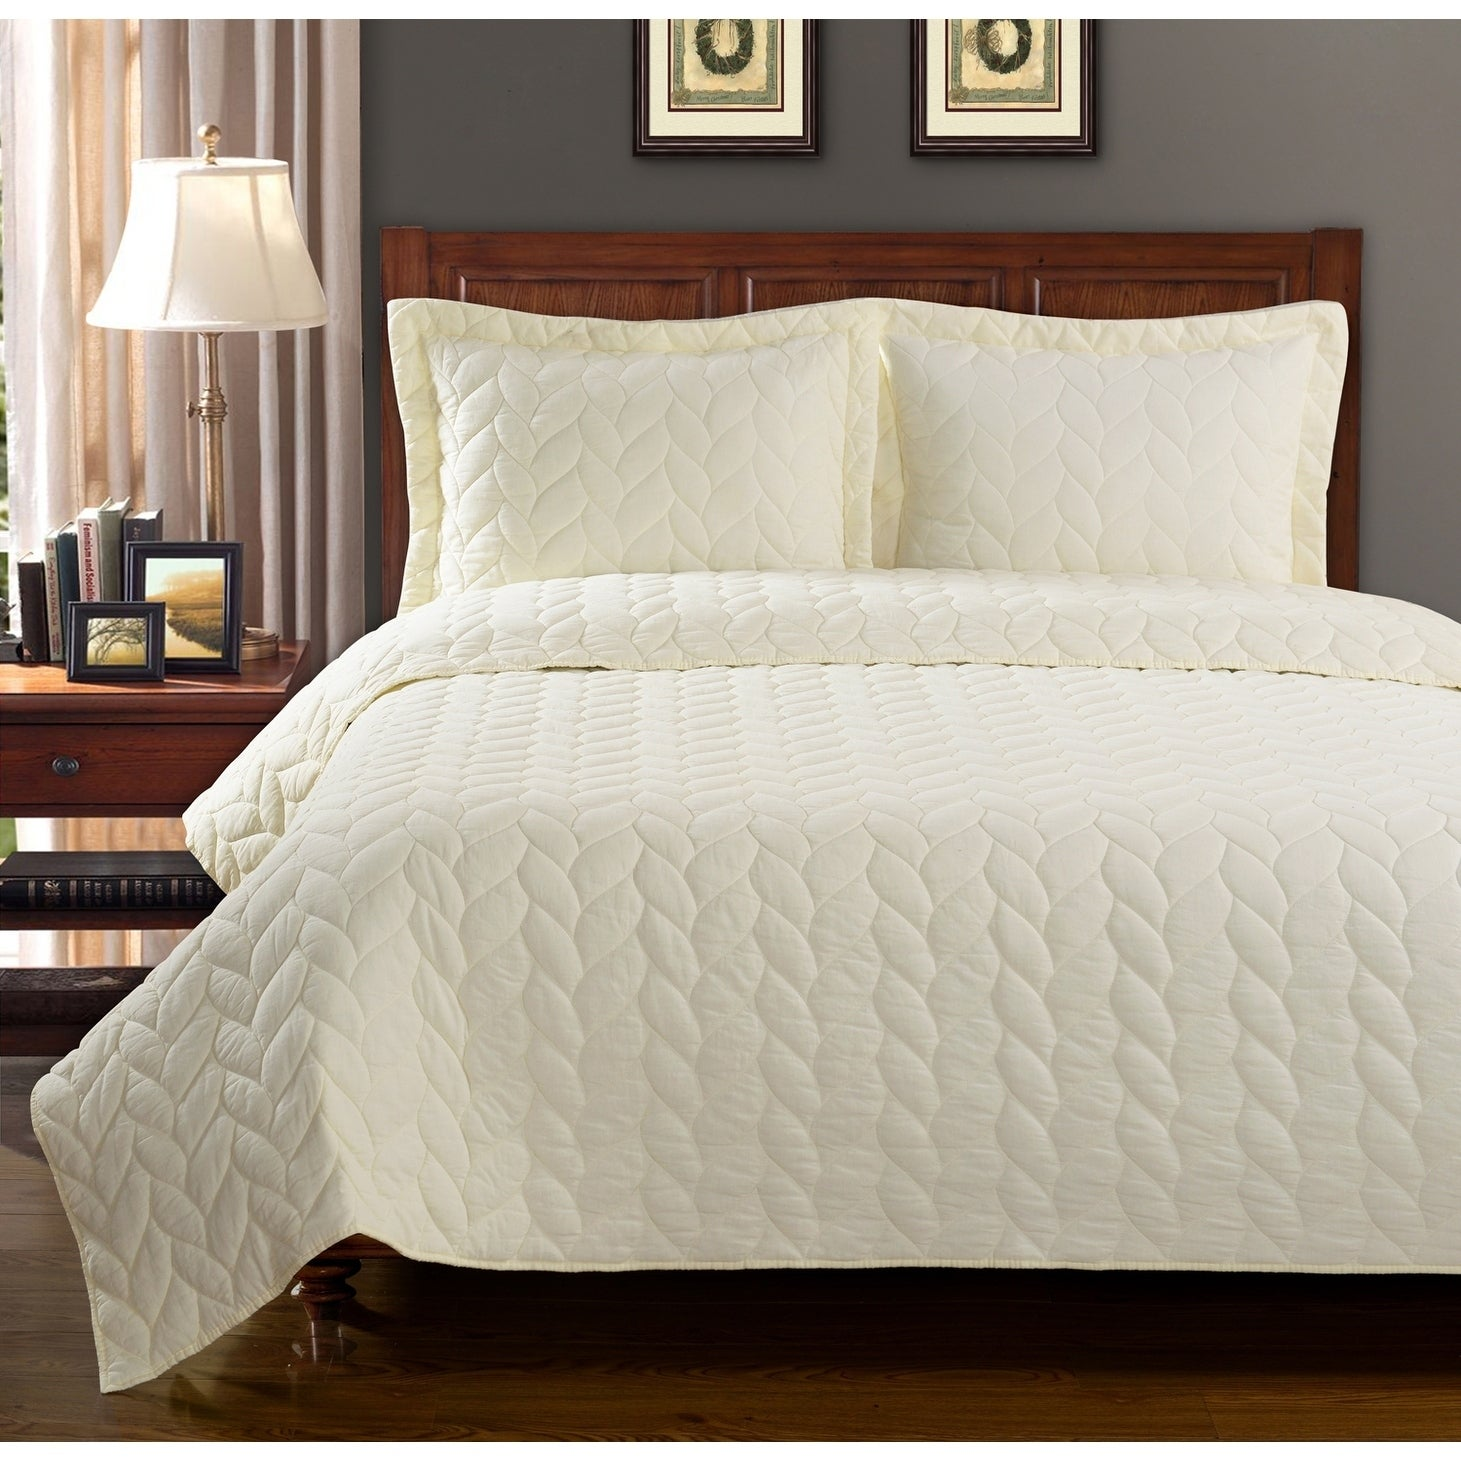 Overstock.com Ashley Braided Cotton 3-piece Quilt Set at Sears.com